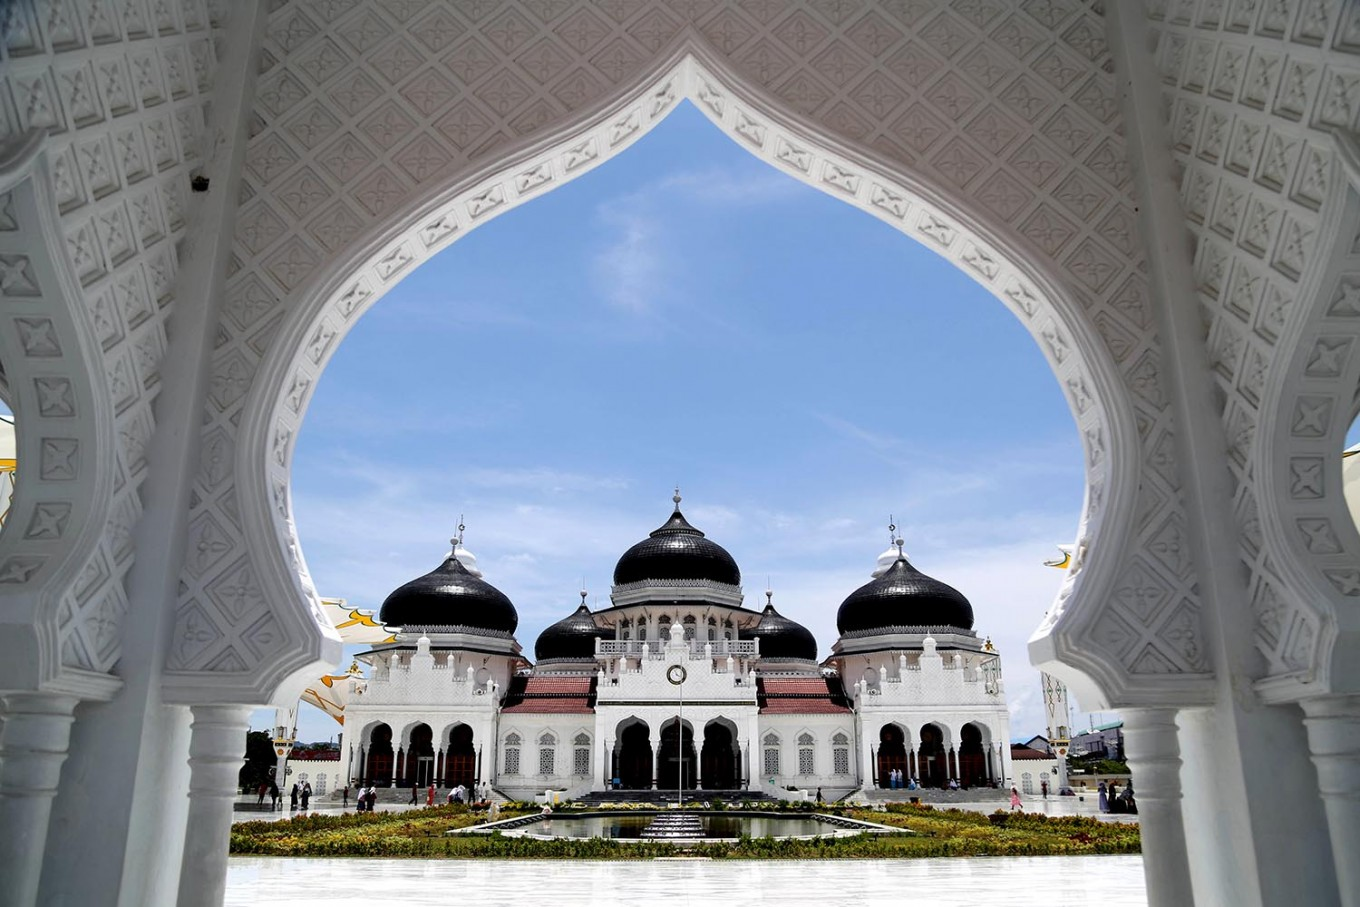 Enchanted by Aceh's iconic landmarks